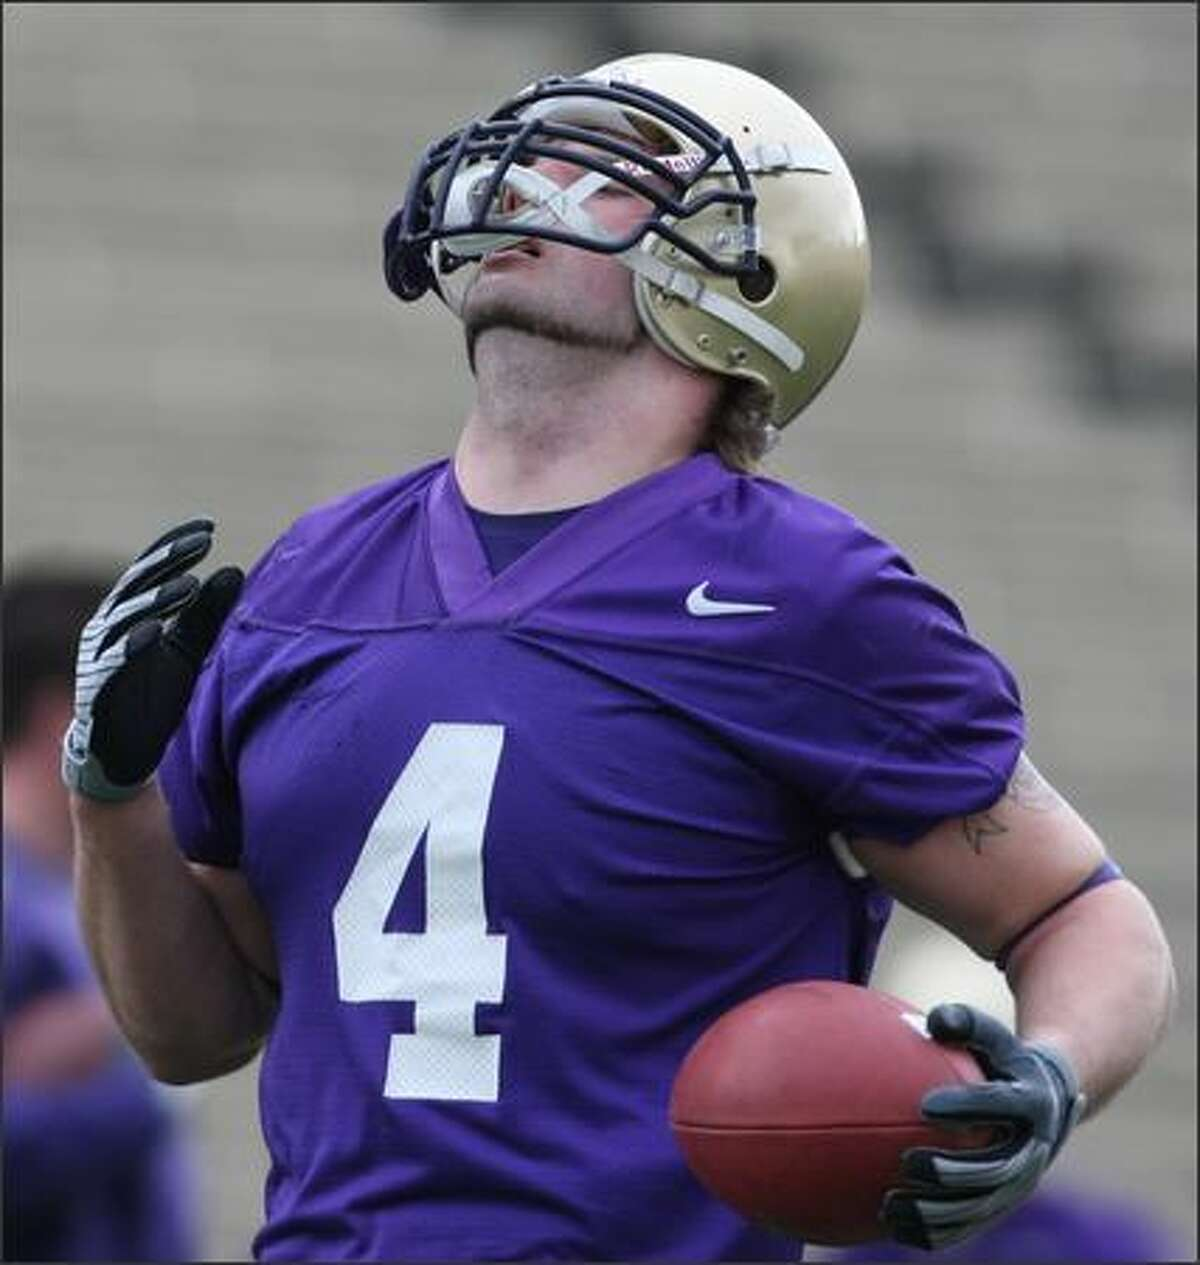 Chris Izbicki runs with the ball during the Huskies' first spring practice session.